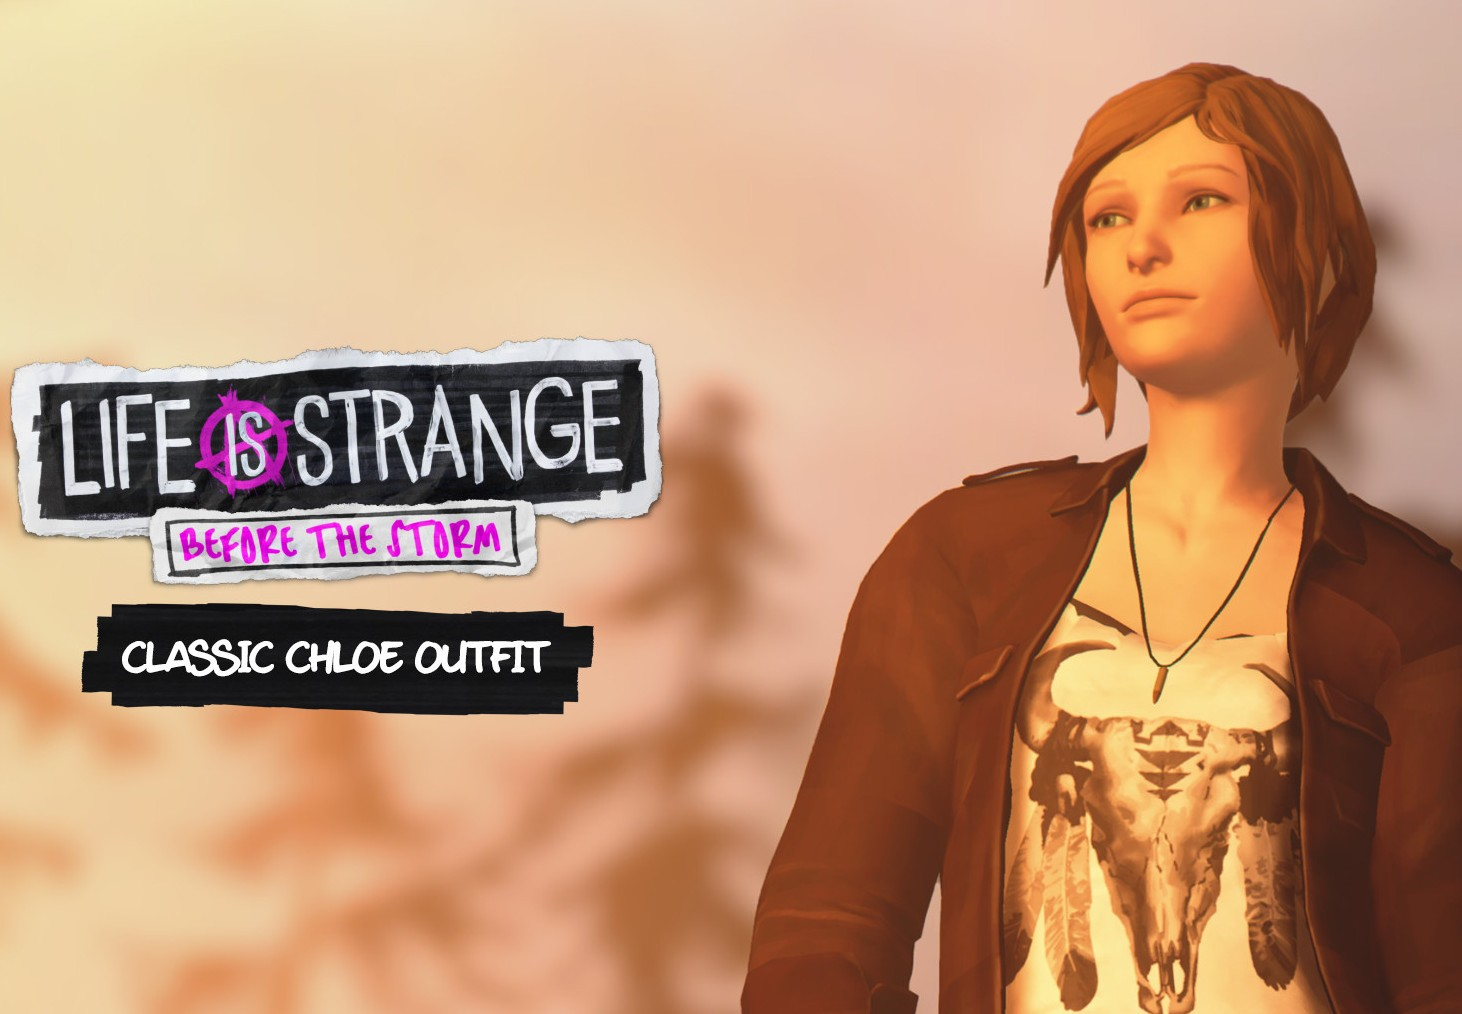 Life is Strange Before the Storm Classic Chloe Outfit Pack PS4